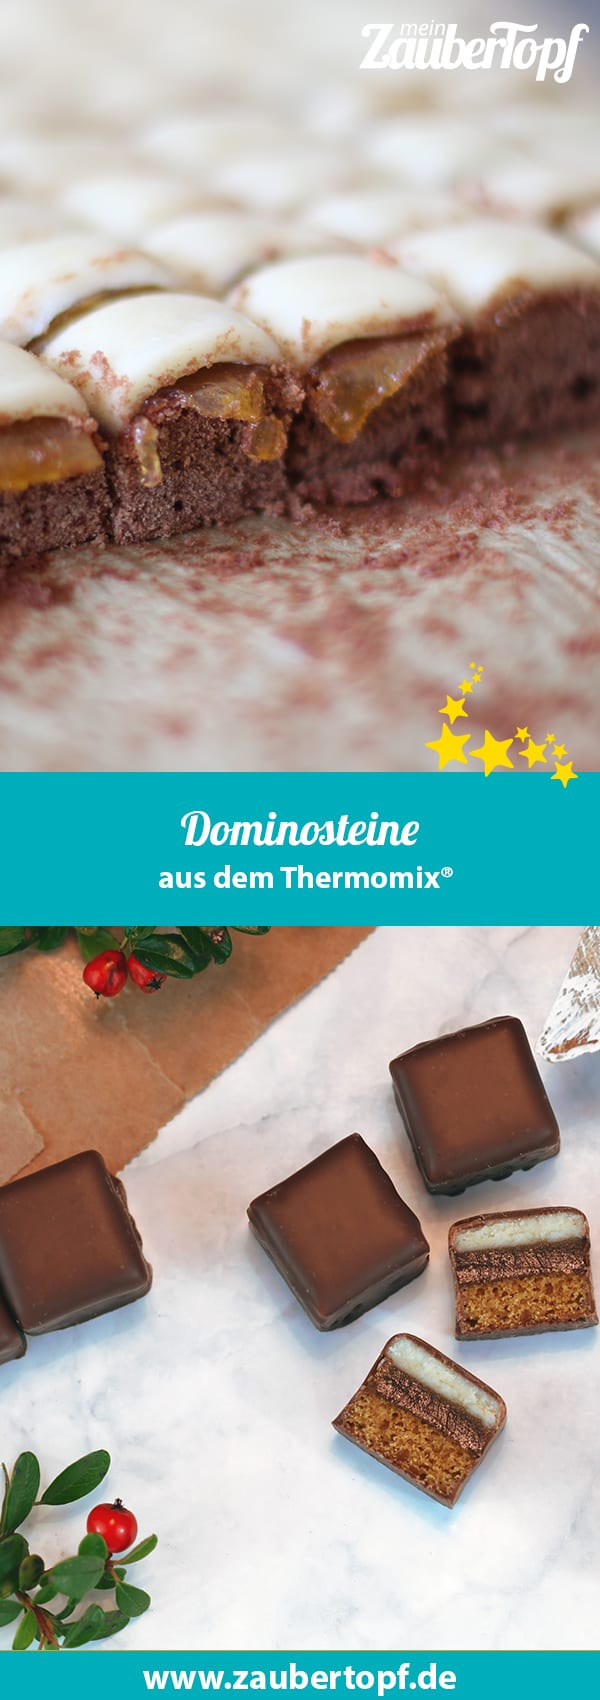 Dominosteine aus dem Thermomix® - Foto: Firn/gettyimages.de